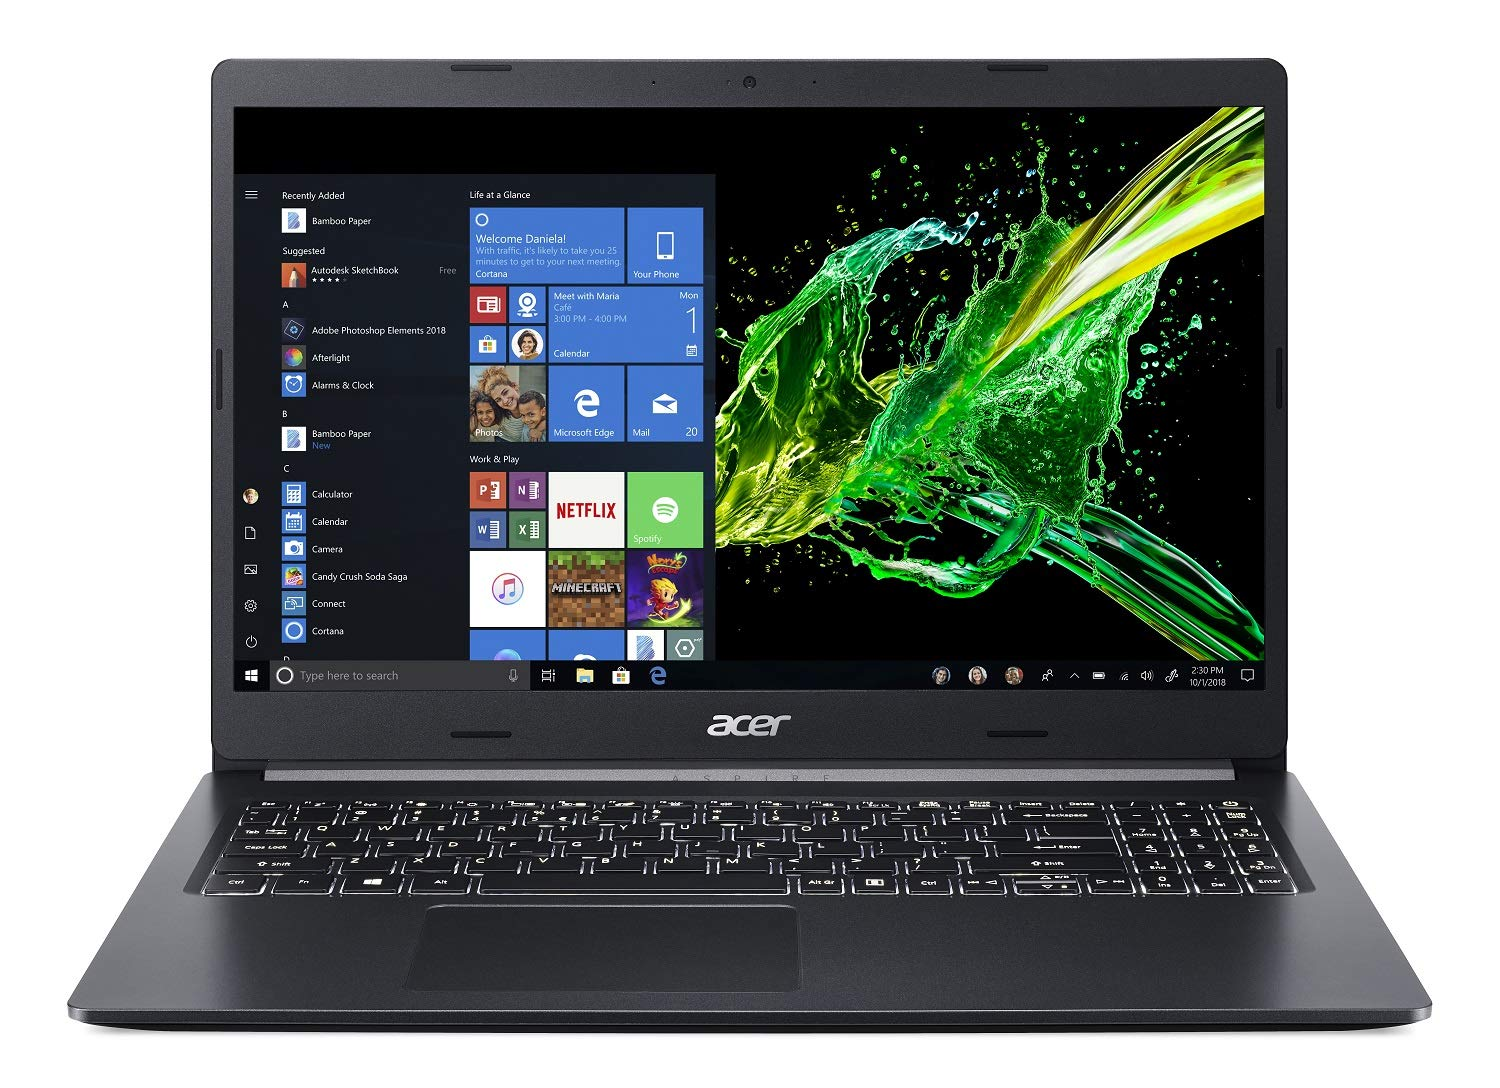 Acer Aspire 5 Slim Laptop, 15.6 Full HD IPS Display, 8th Gen Intel Core i7-8565U, NVIDIA GeForce MX250, 12GB DDR4, 512GB PCIe Nvme SSD, Windows 10 Home, A515-54G-73WC